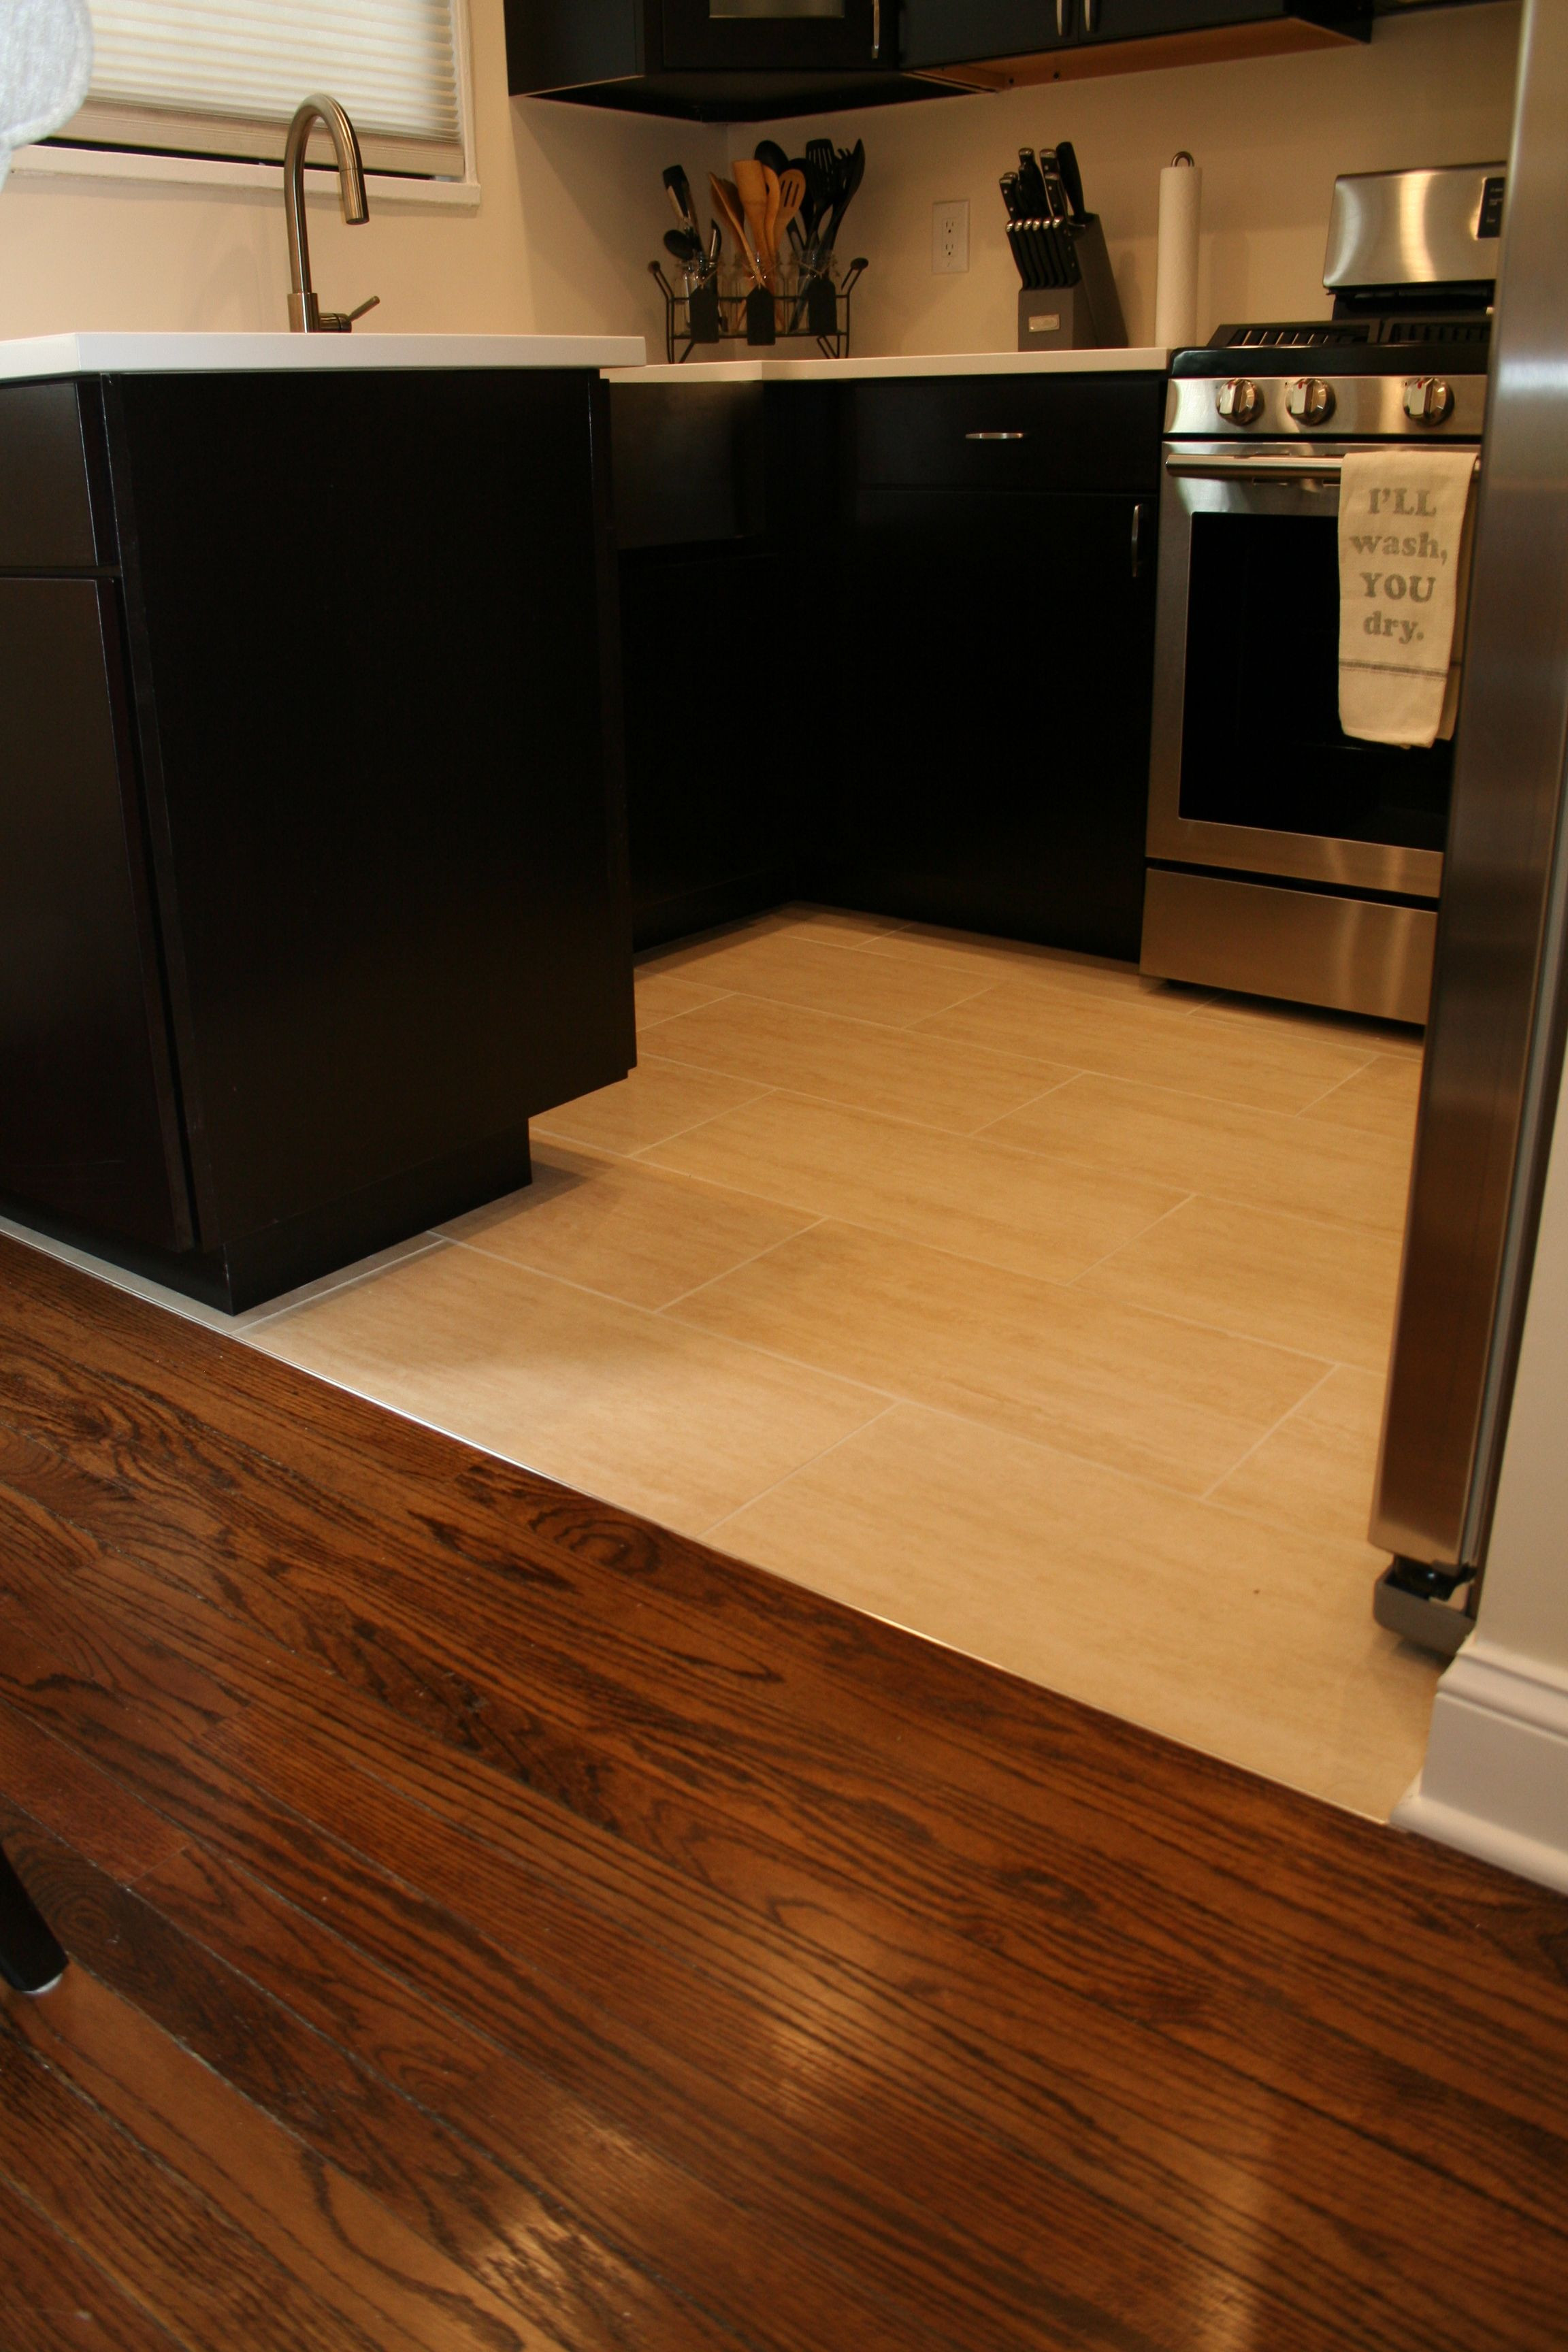 images of hardwood floors of astounding hardwood floor in kitchen and floored kitchen decor items throughout hardwood floor in kitchen cute hardwood floor in kitchen within transition from tile to wood